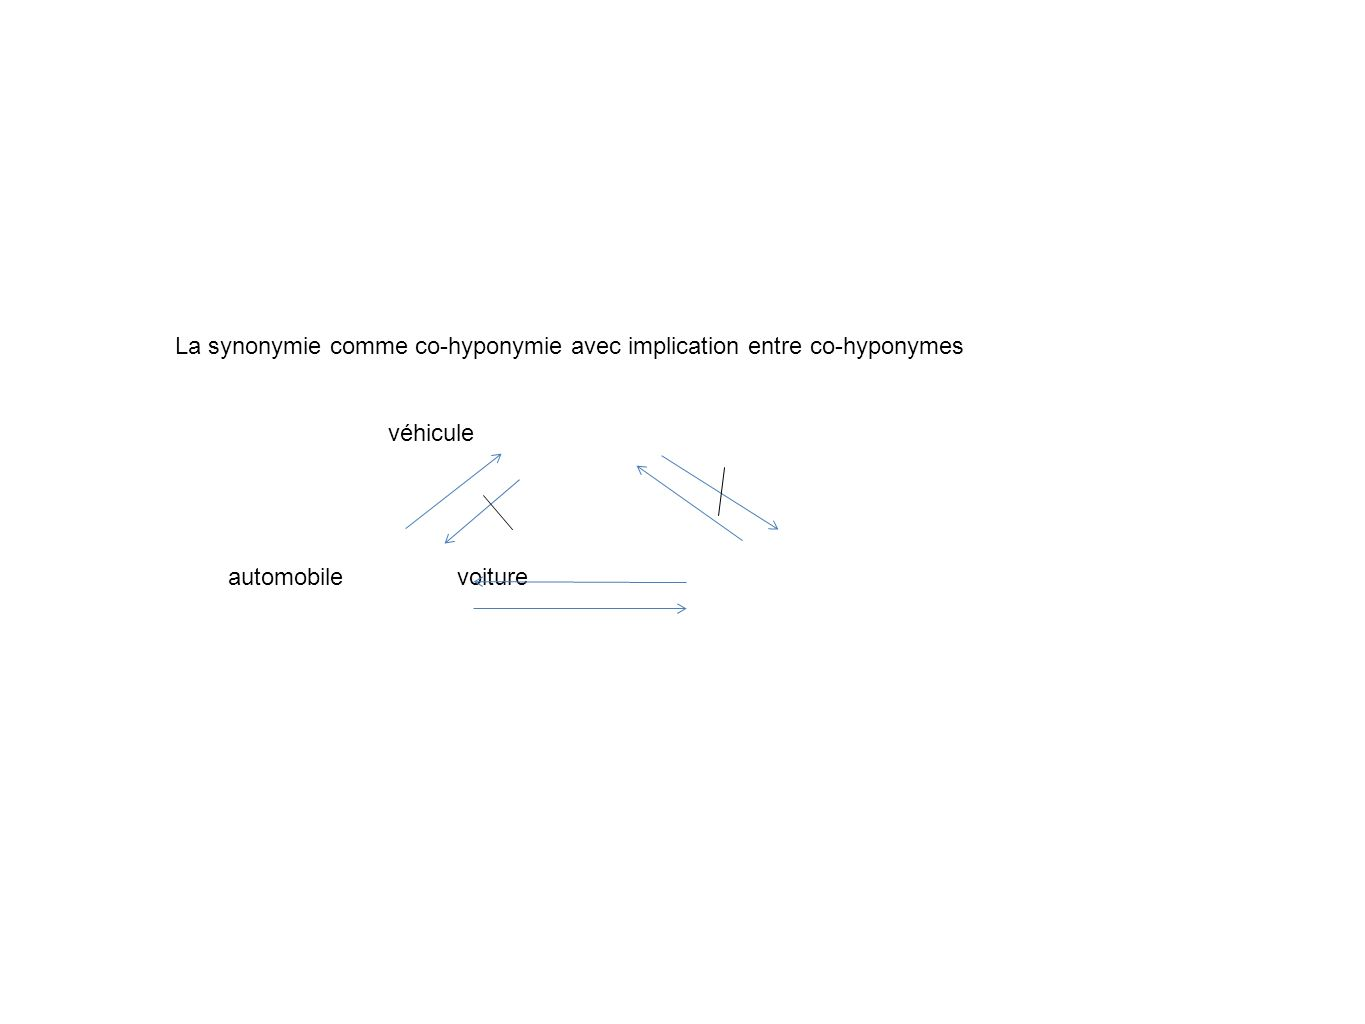 La synonymie comme co-hyponymie avec implication entre co-hyponymes